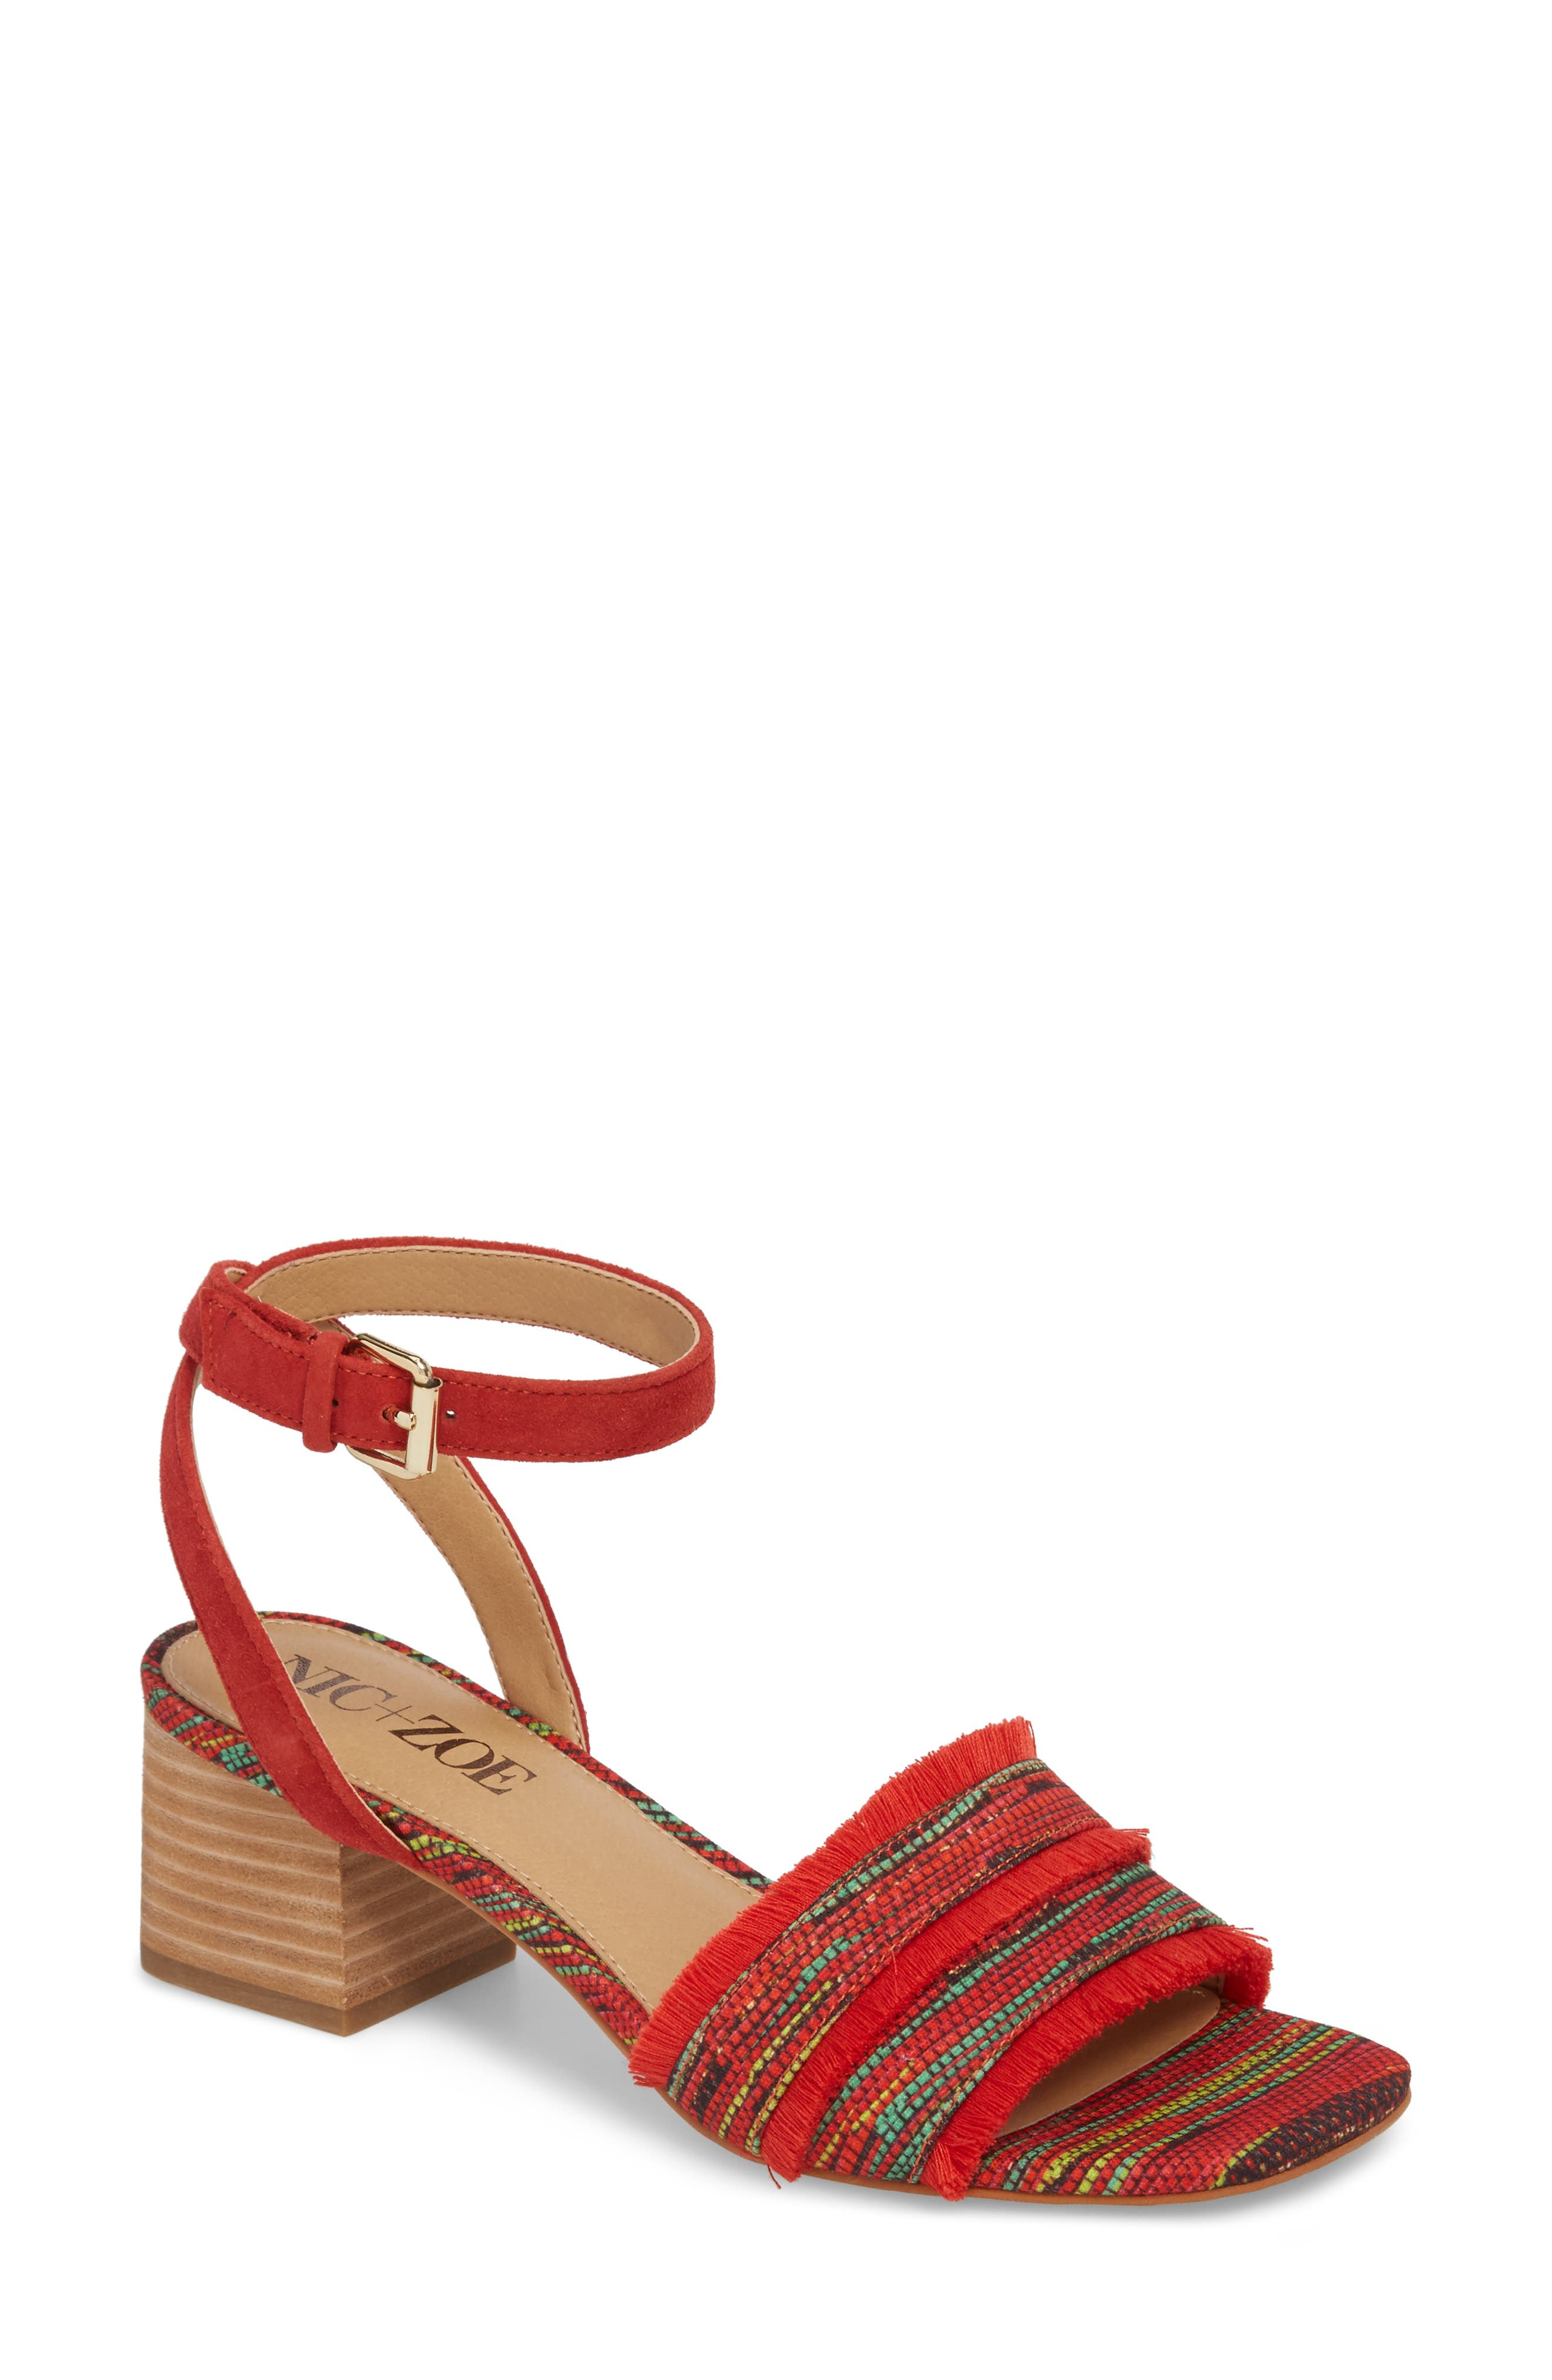 Zaria Fringed Sandal,                             Main thumbnail 1, color,                             Red Multi Fabric